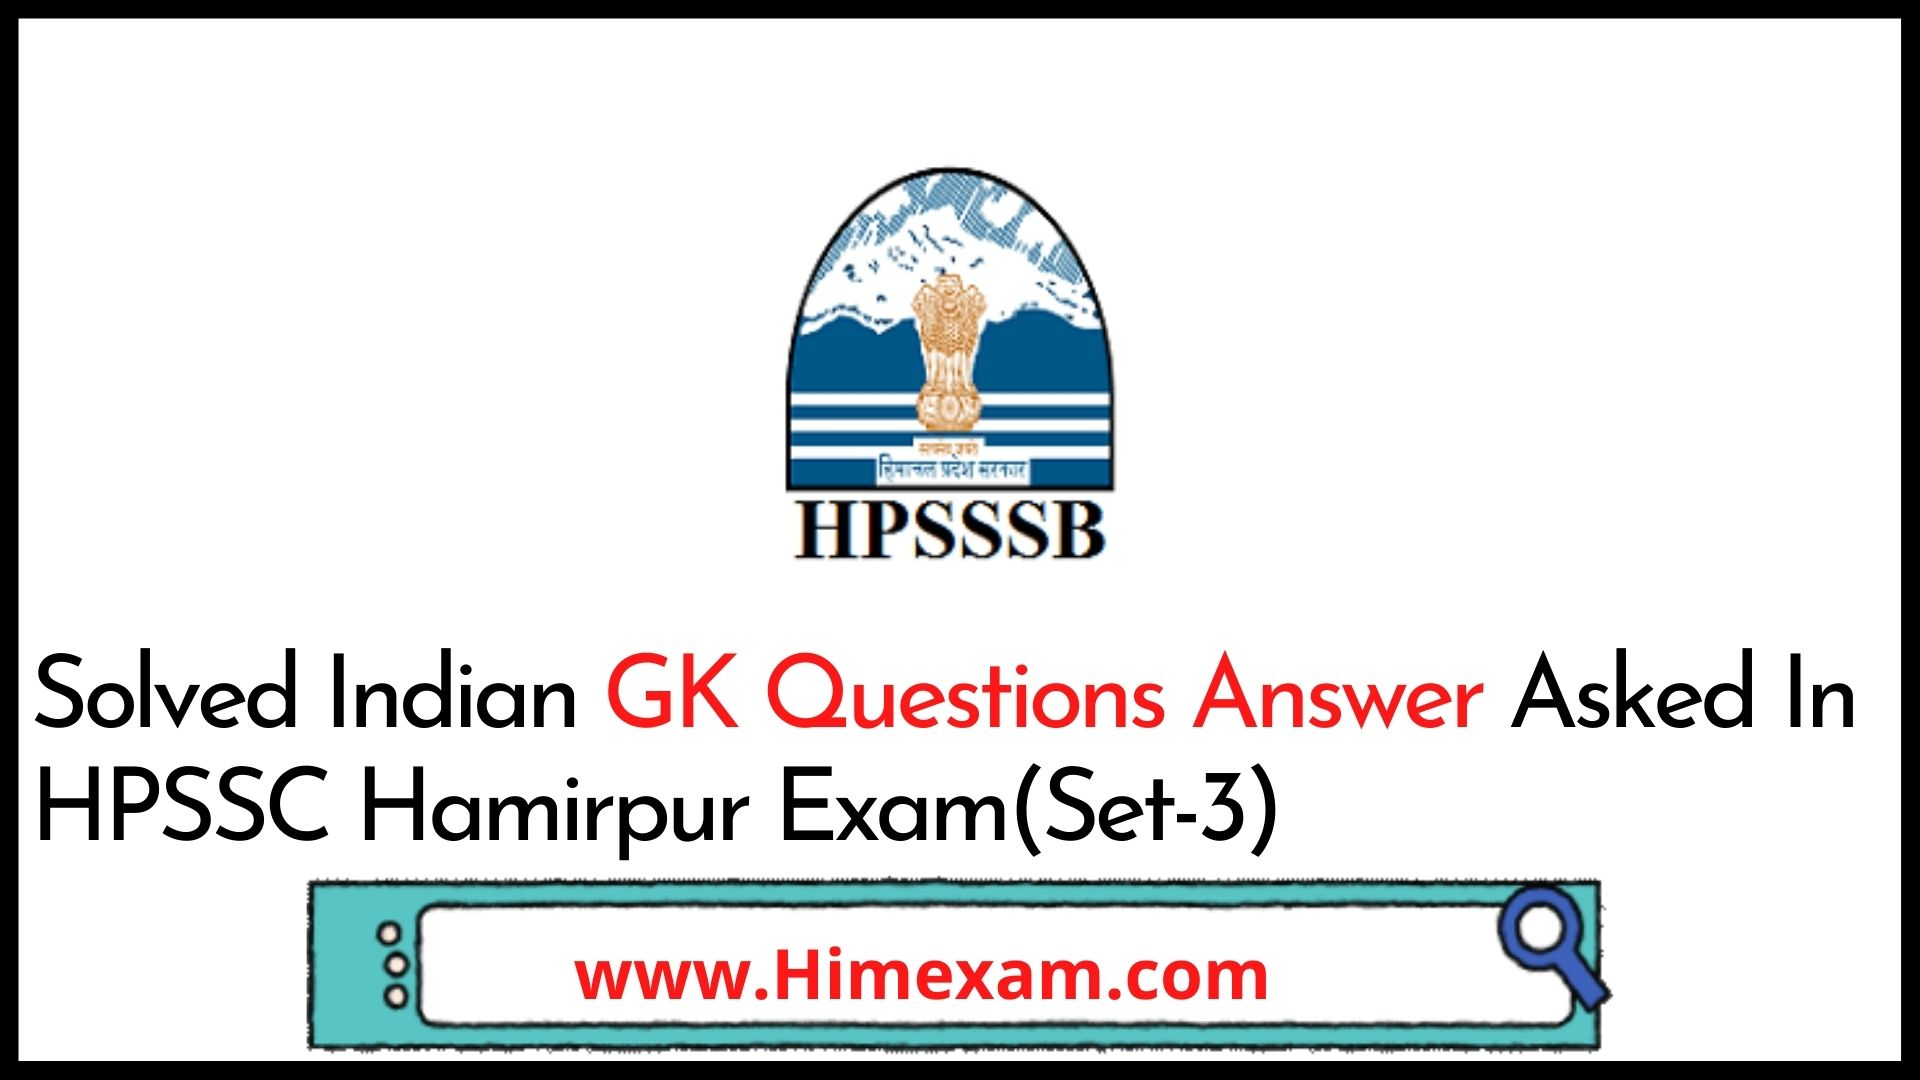 Solved Indian GK Questions Answer Asked In HPSSC Hamirpur Exam(Set-3)